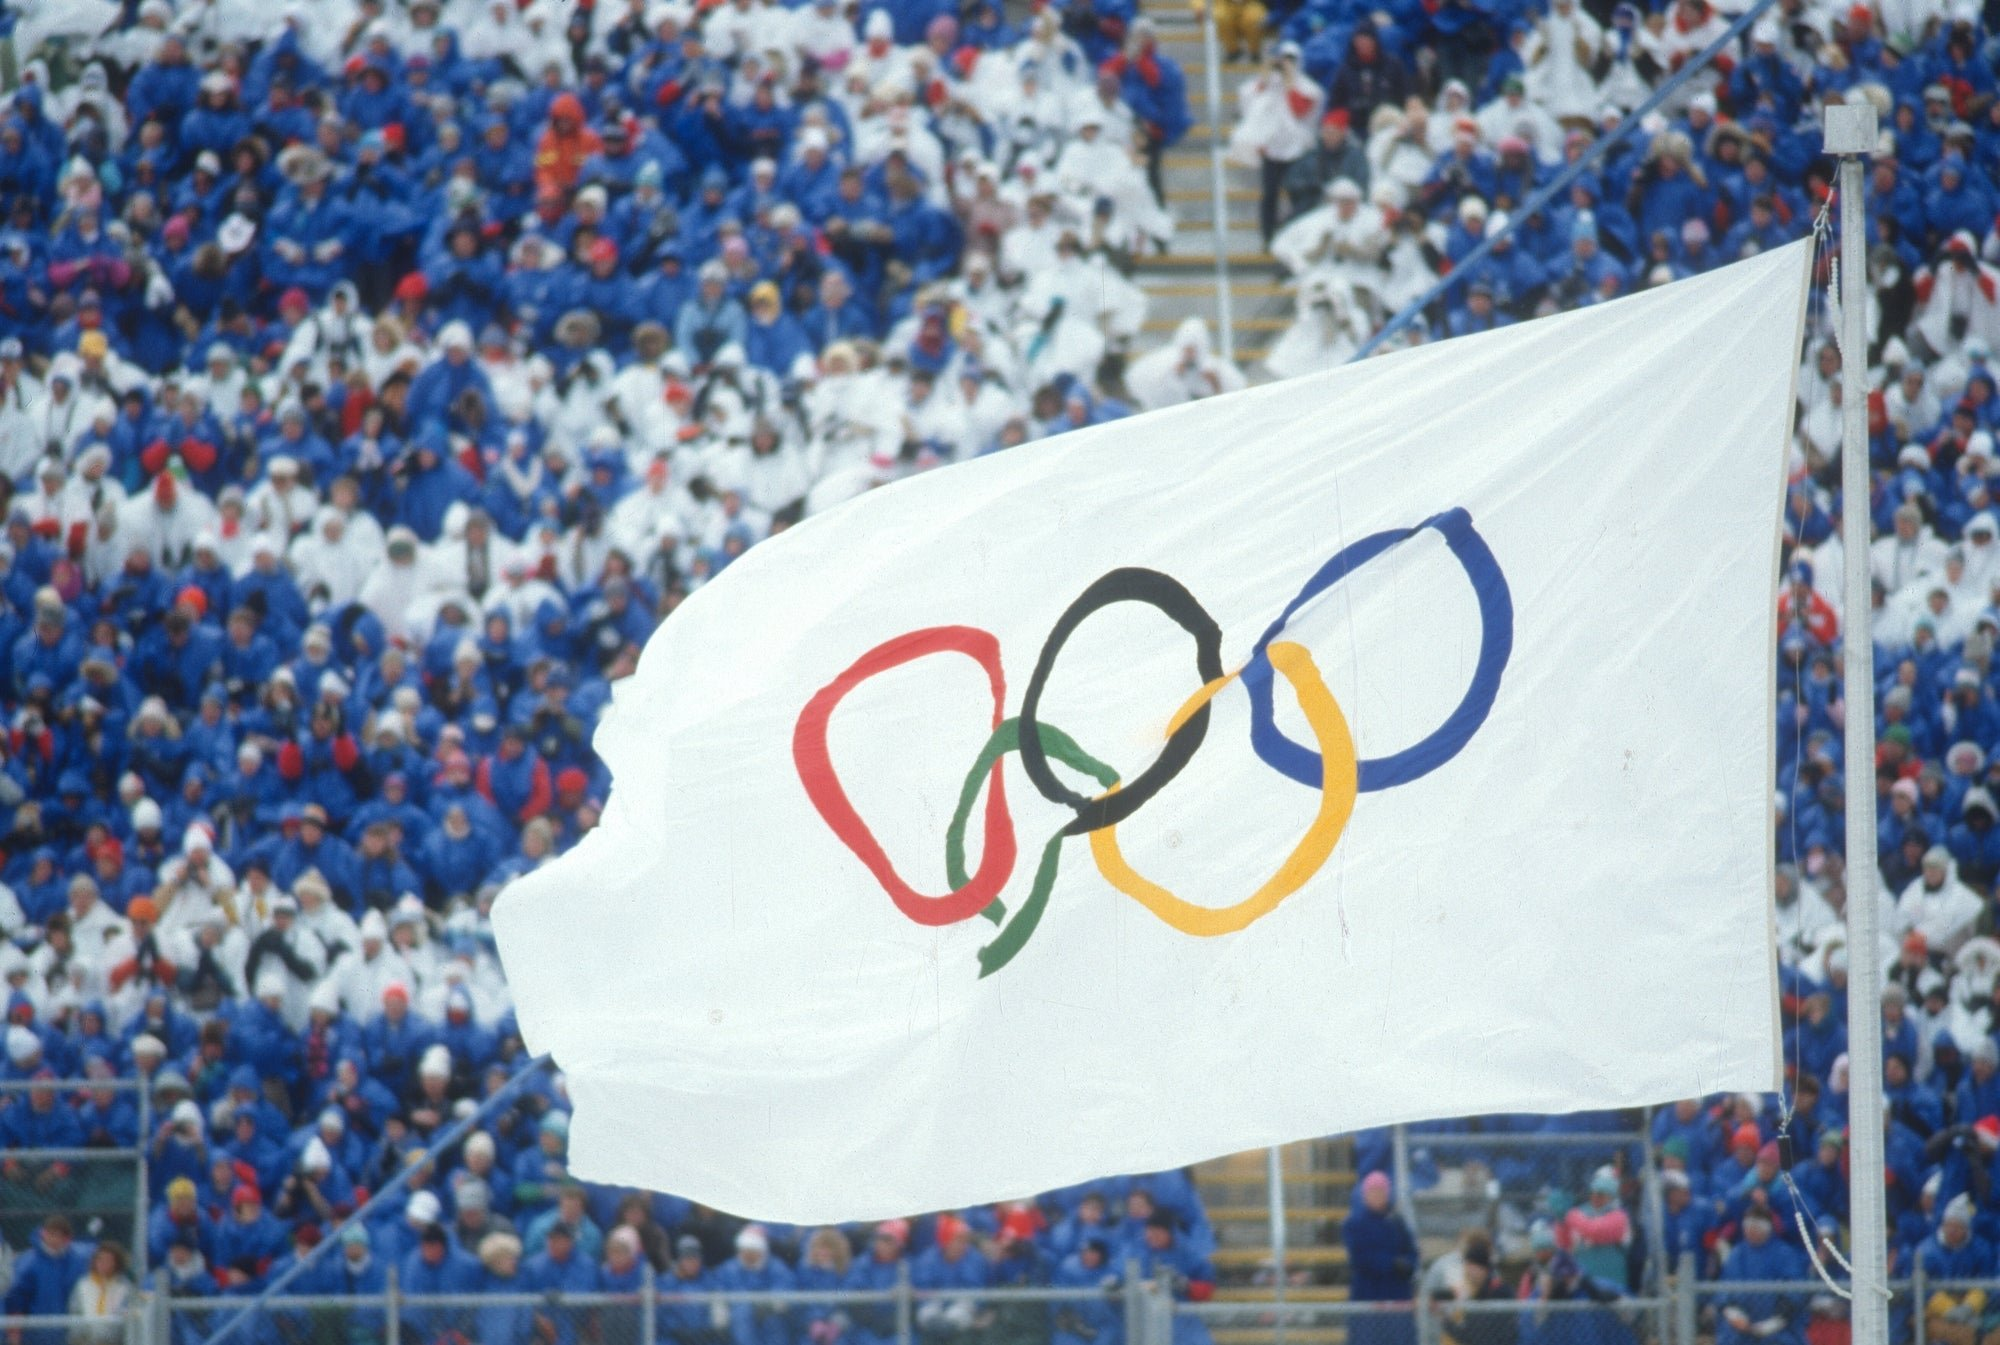 Why are people obsessed with the Olympics?